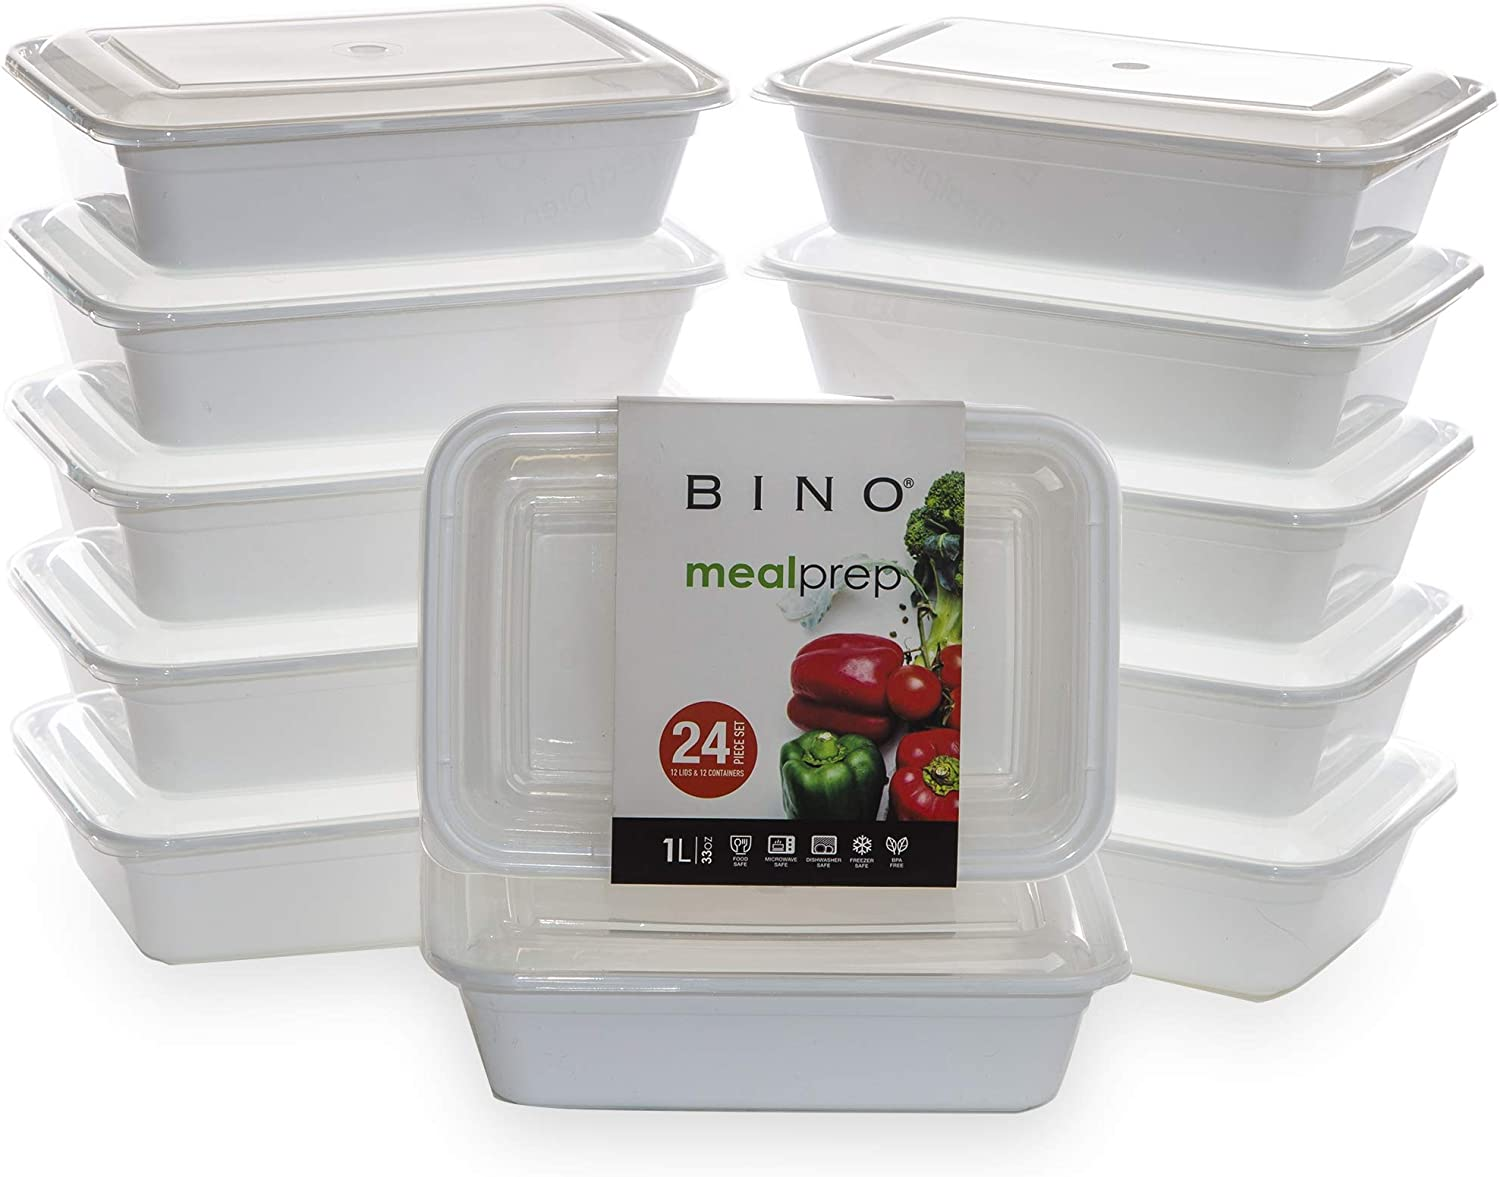 Amazon Com Bino Meal Prep Containers With Lids 1 Compartment 33 Oz 12 Pack White Bento Box Lunch Containers For Adults Food Containers Meal Prep Food Prep Containers Set Kitchen Dining